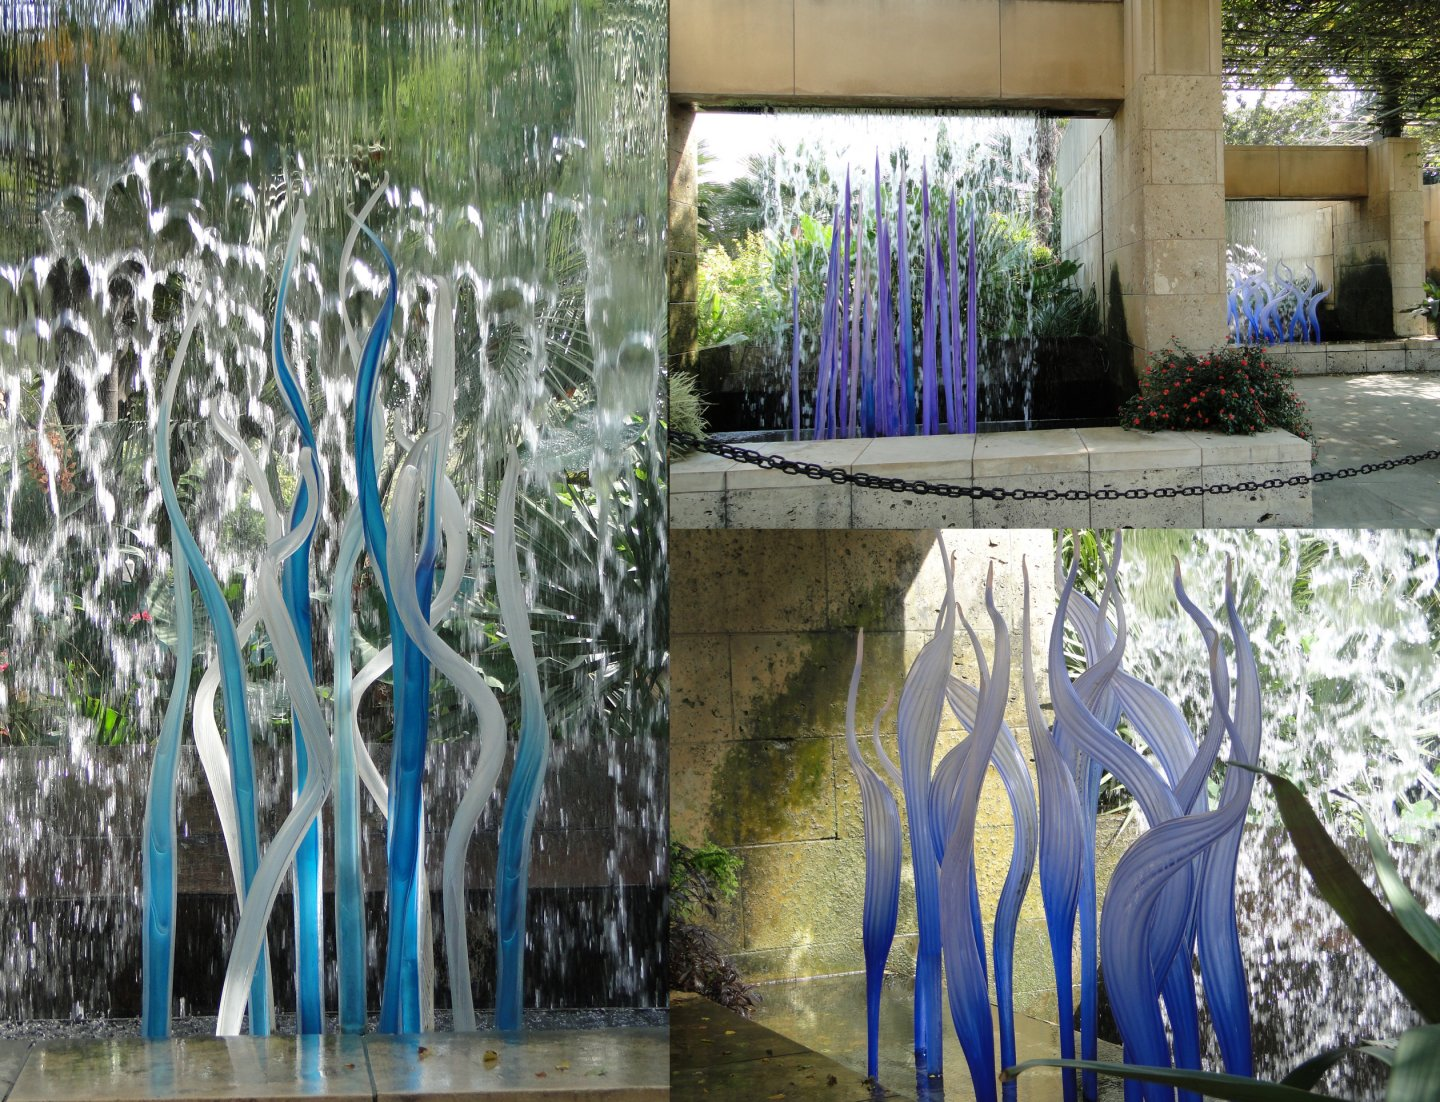 Chihuly blue glass snake spears in Arboretum falling water features.